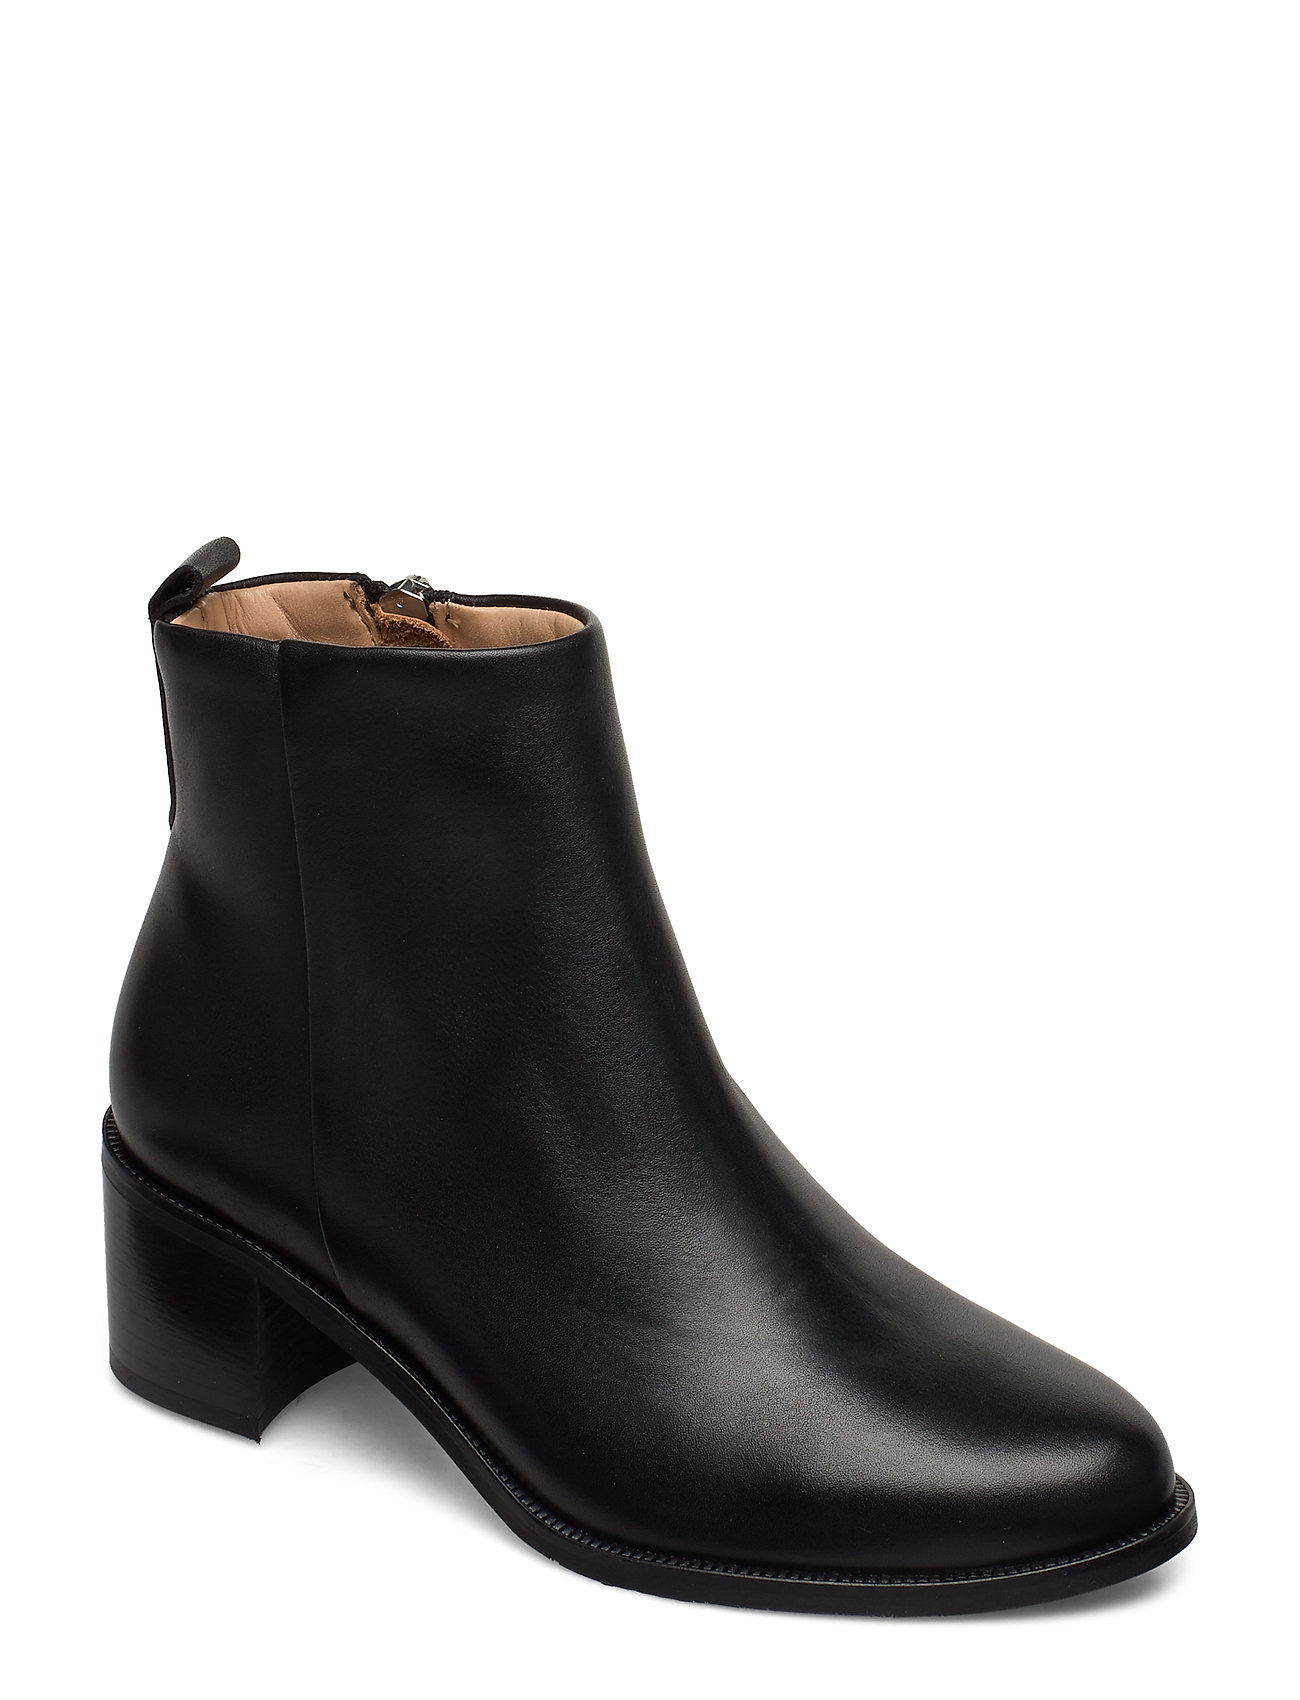 Image of Town Ankle Boot Shoes Boots Ankle Boots Ankle Boots With Heel Sort Royal RepubliQ (3314199059)